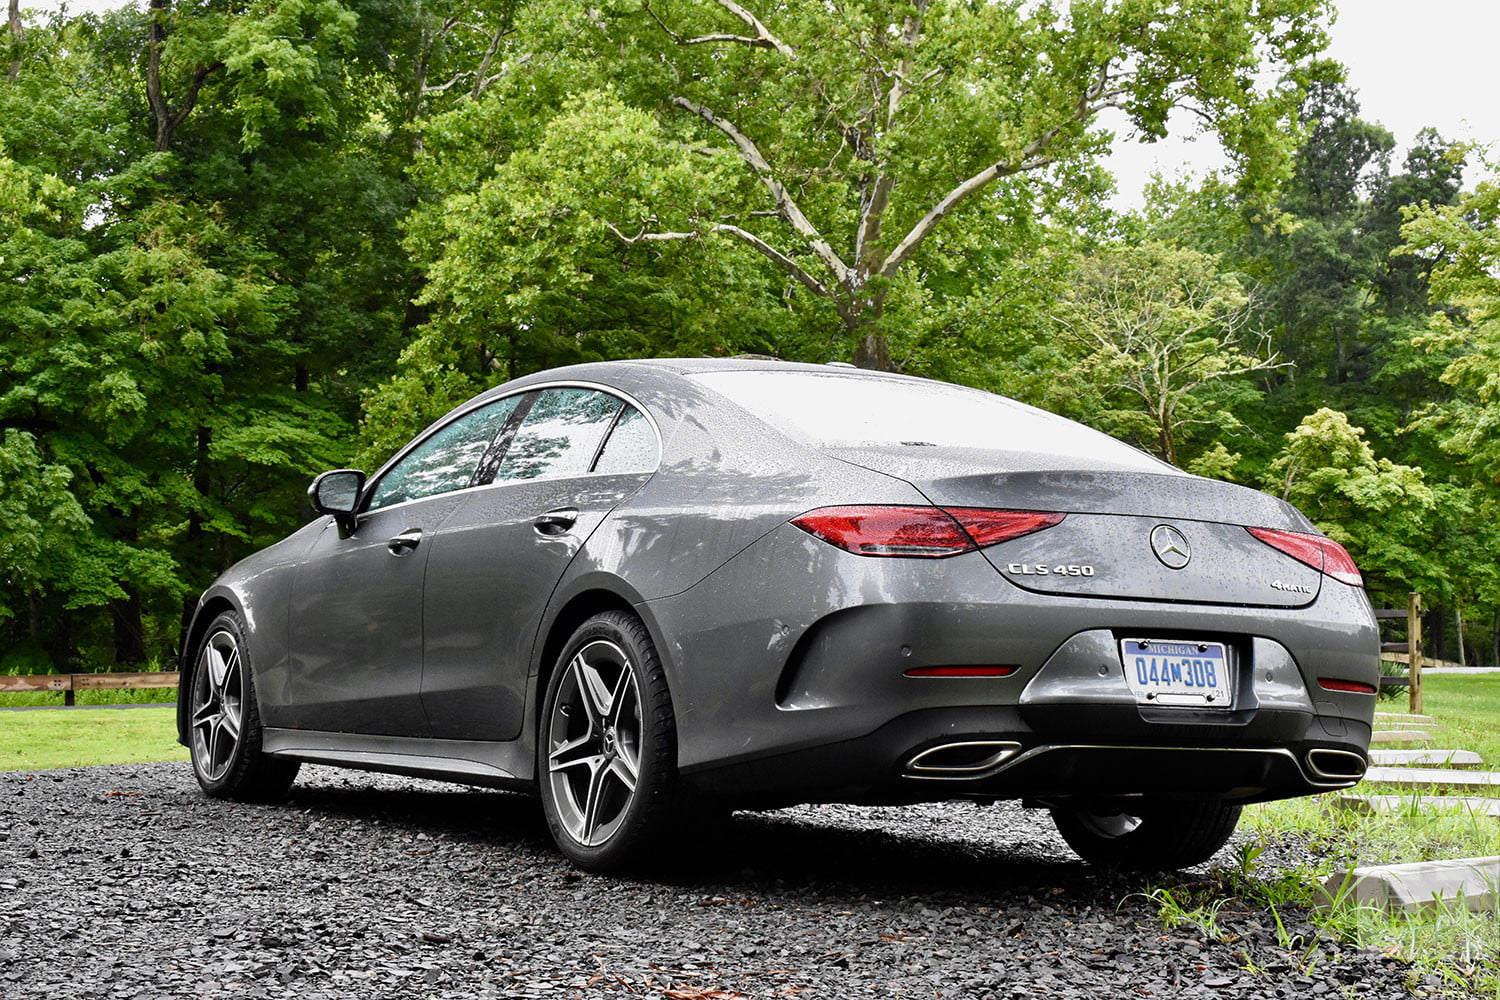 2019 Mercedes-Benz CLS450 4Matic First Drive Review | Digital Trends